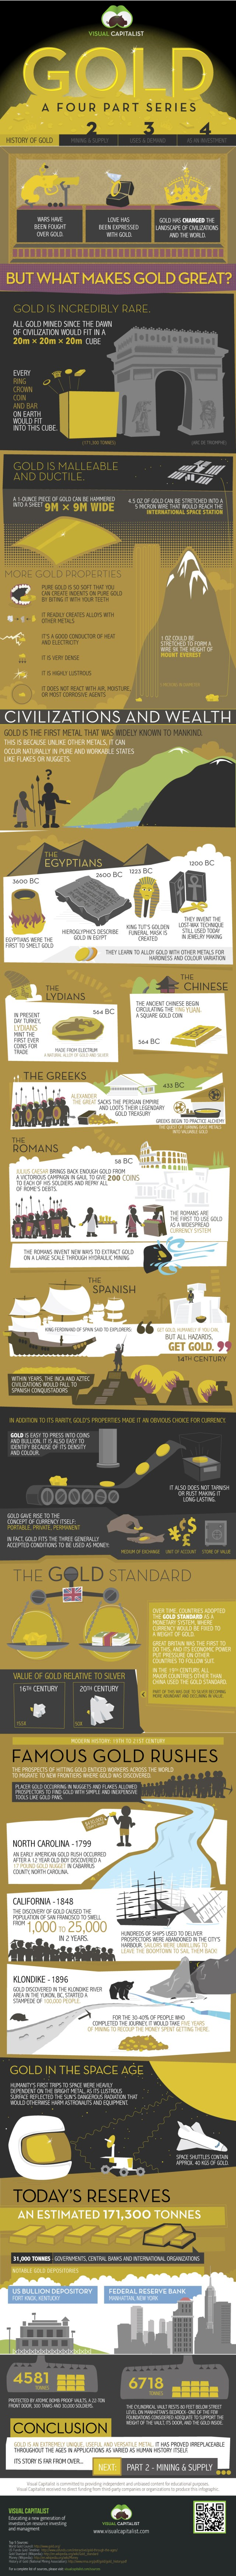 gold-history-infographic2